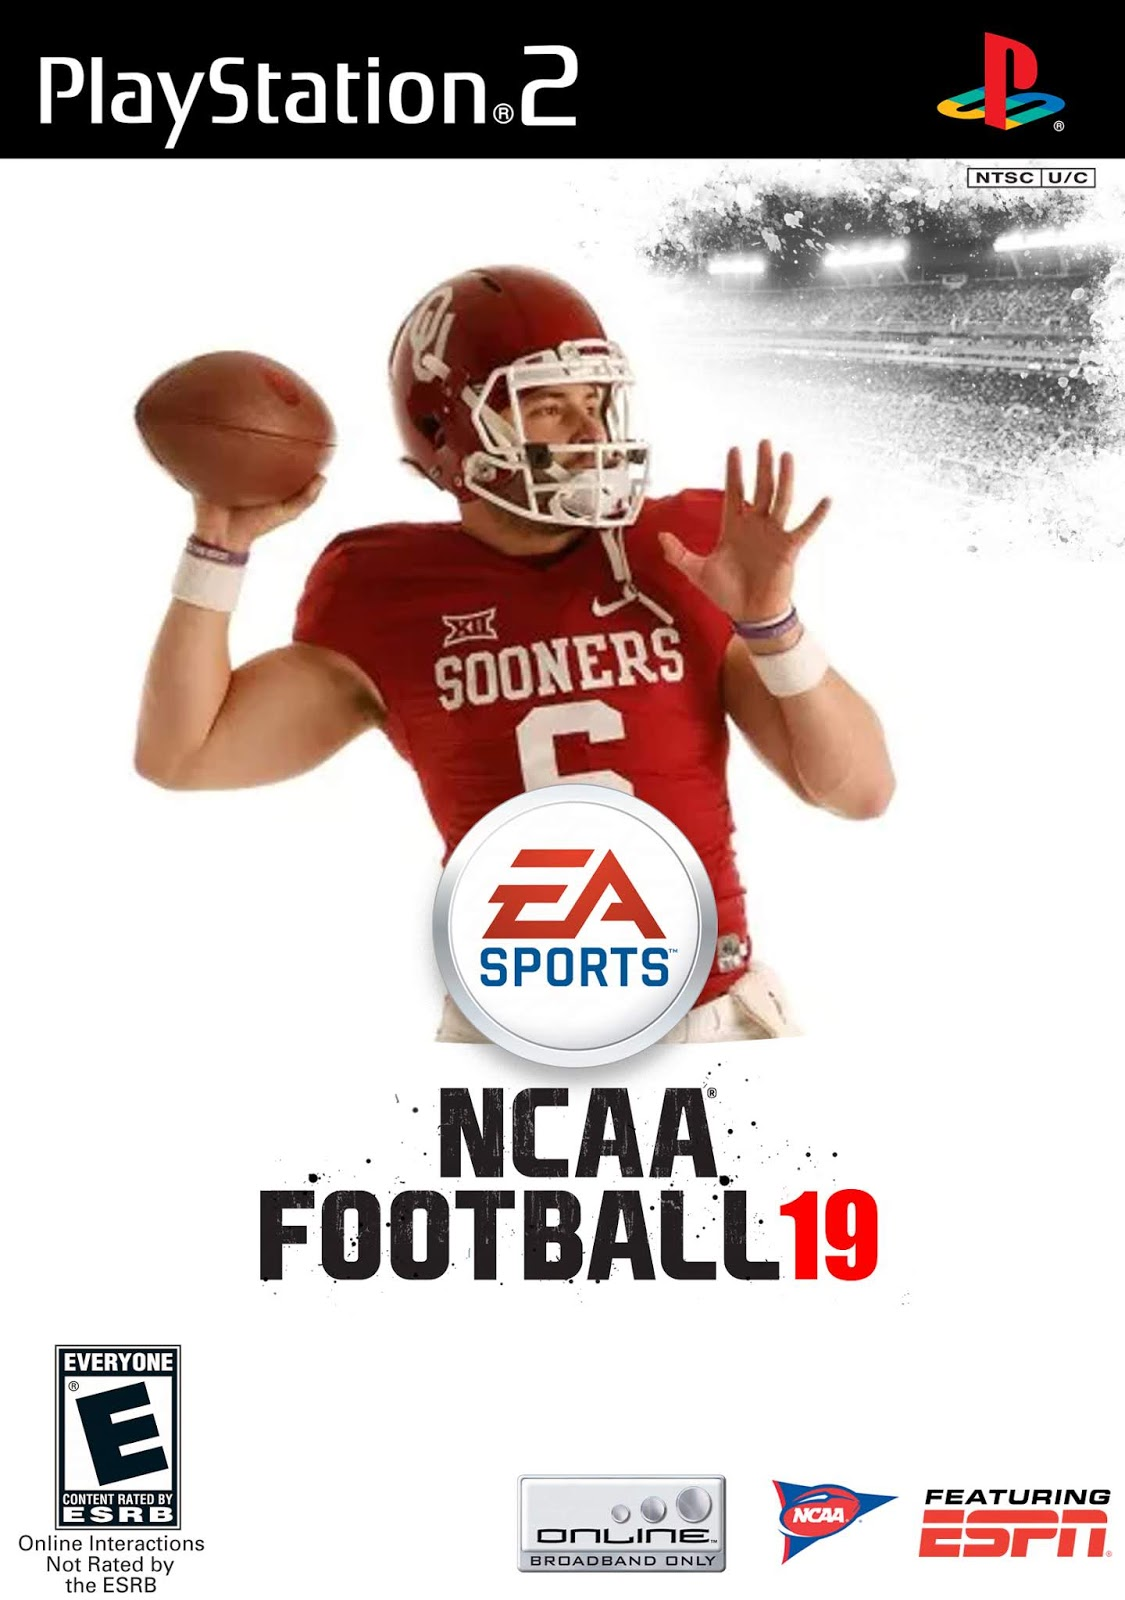 NCAA Football 19 for Playstation 2 and PSP is now available